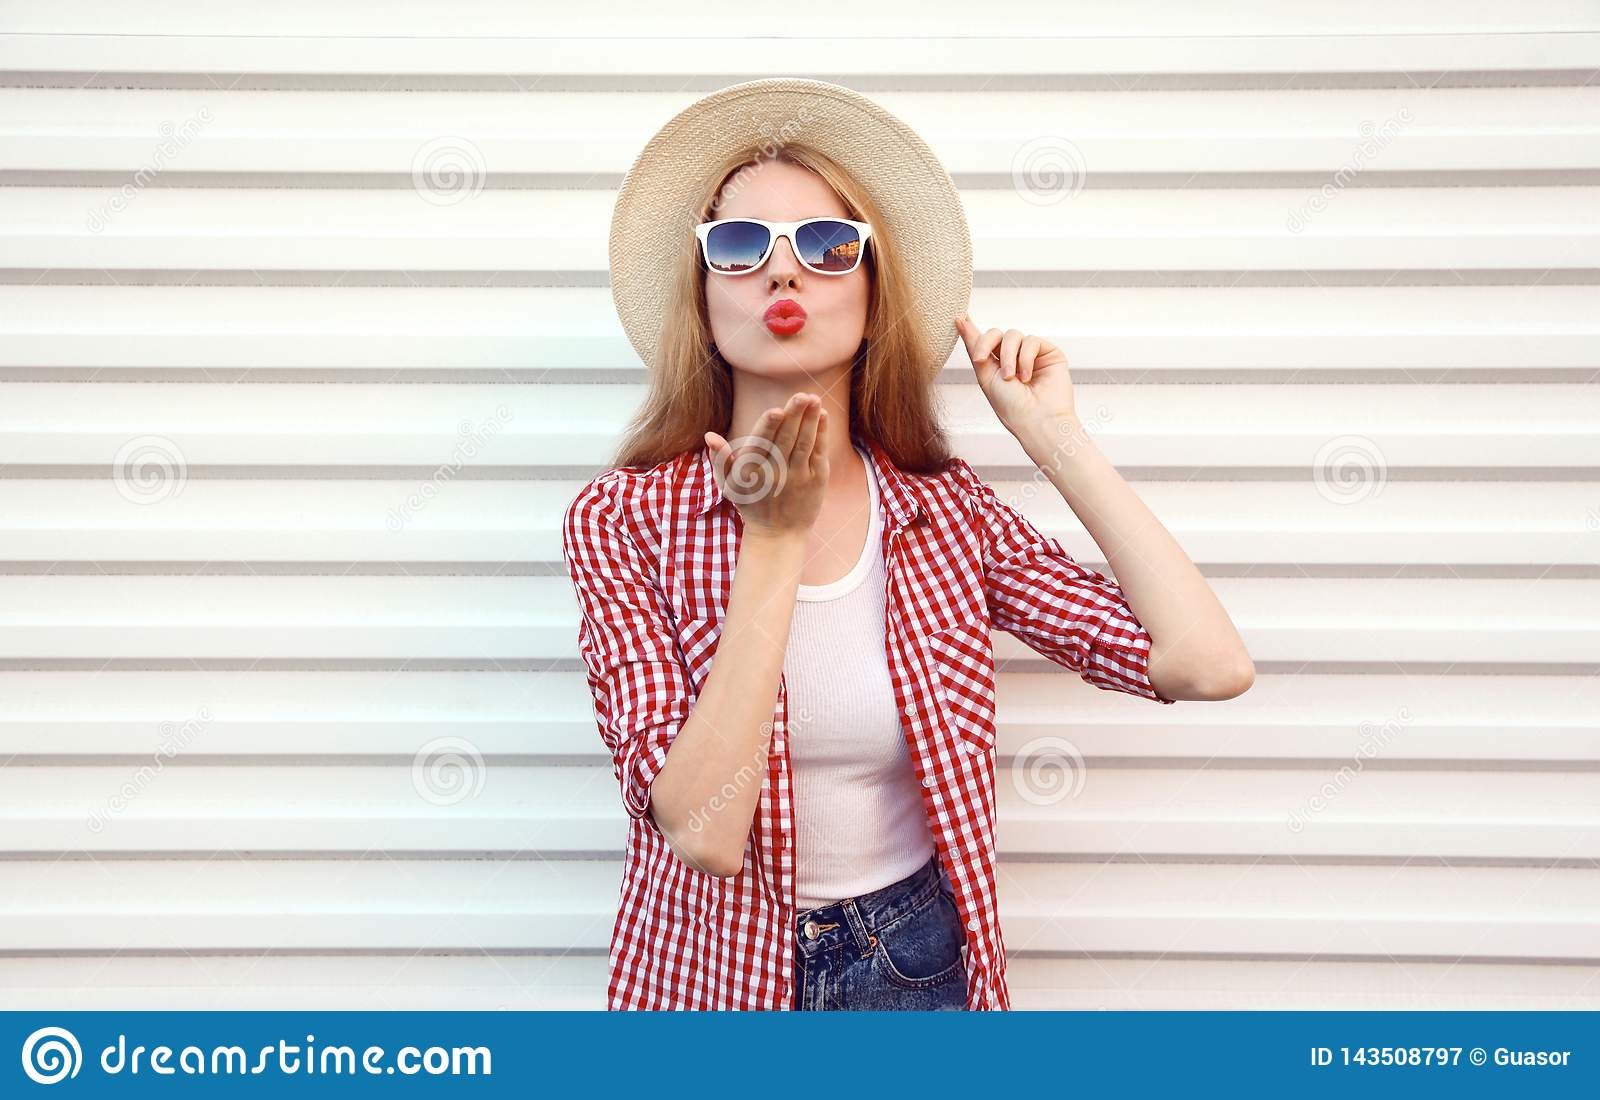 Portrait young woman sending sweet air kiss blowing red lips in summer round straw hat, checkered shirt on white wall